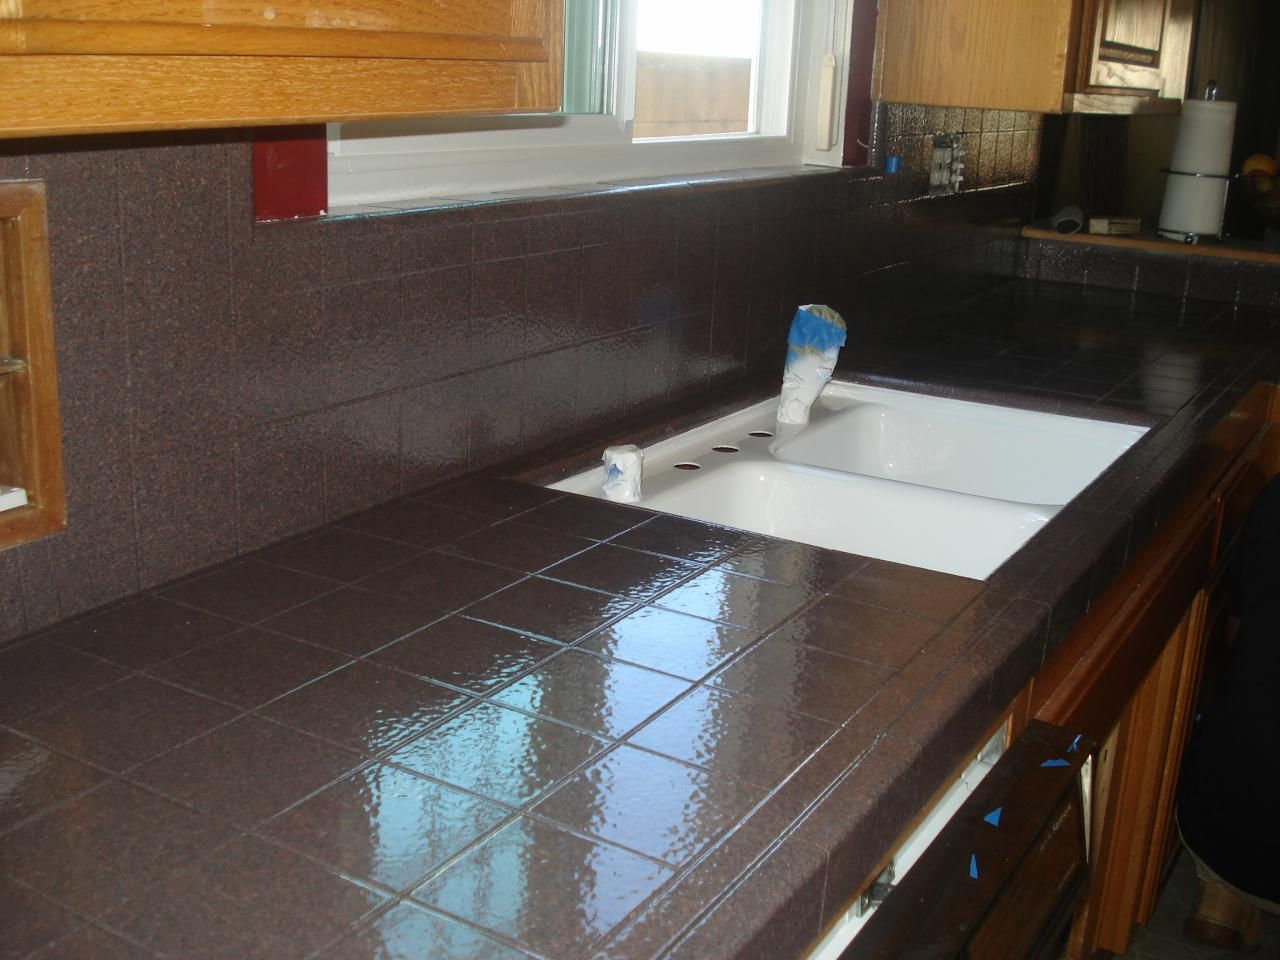 Kitchen Tile Countertops Small White Island Pkb Reglazing Countertop Reglazed Balmorai